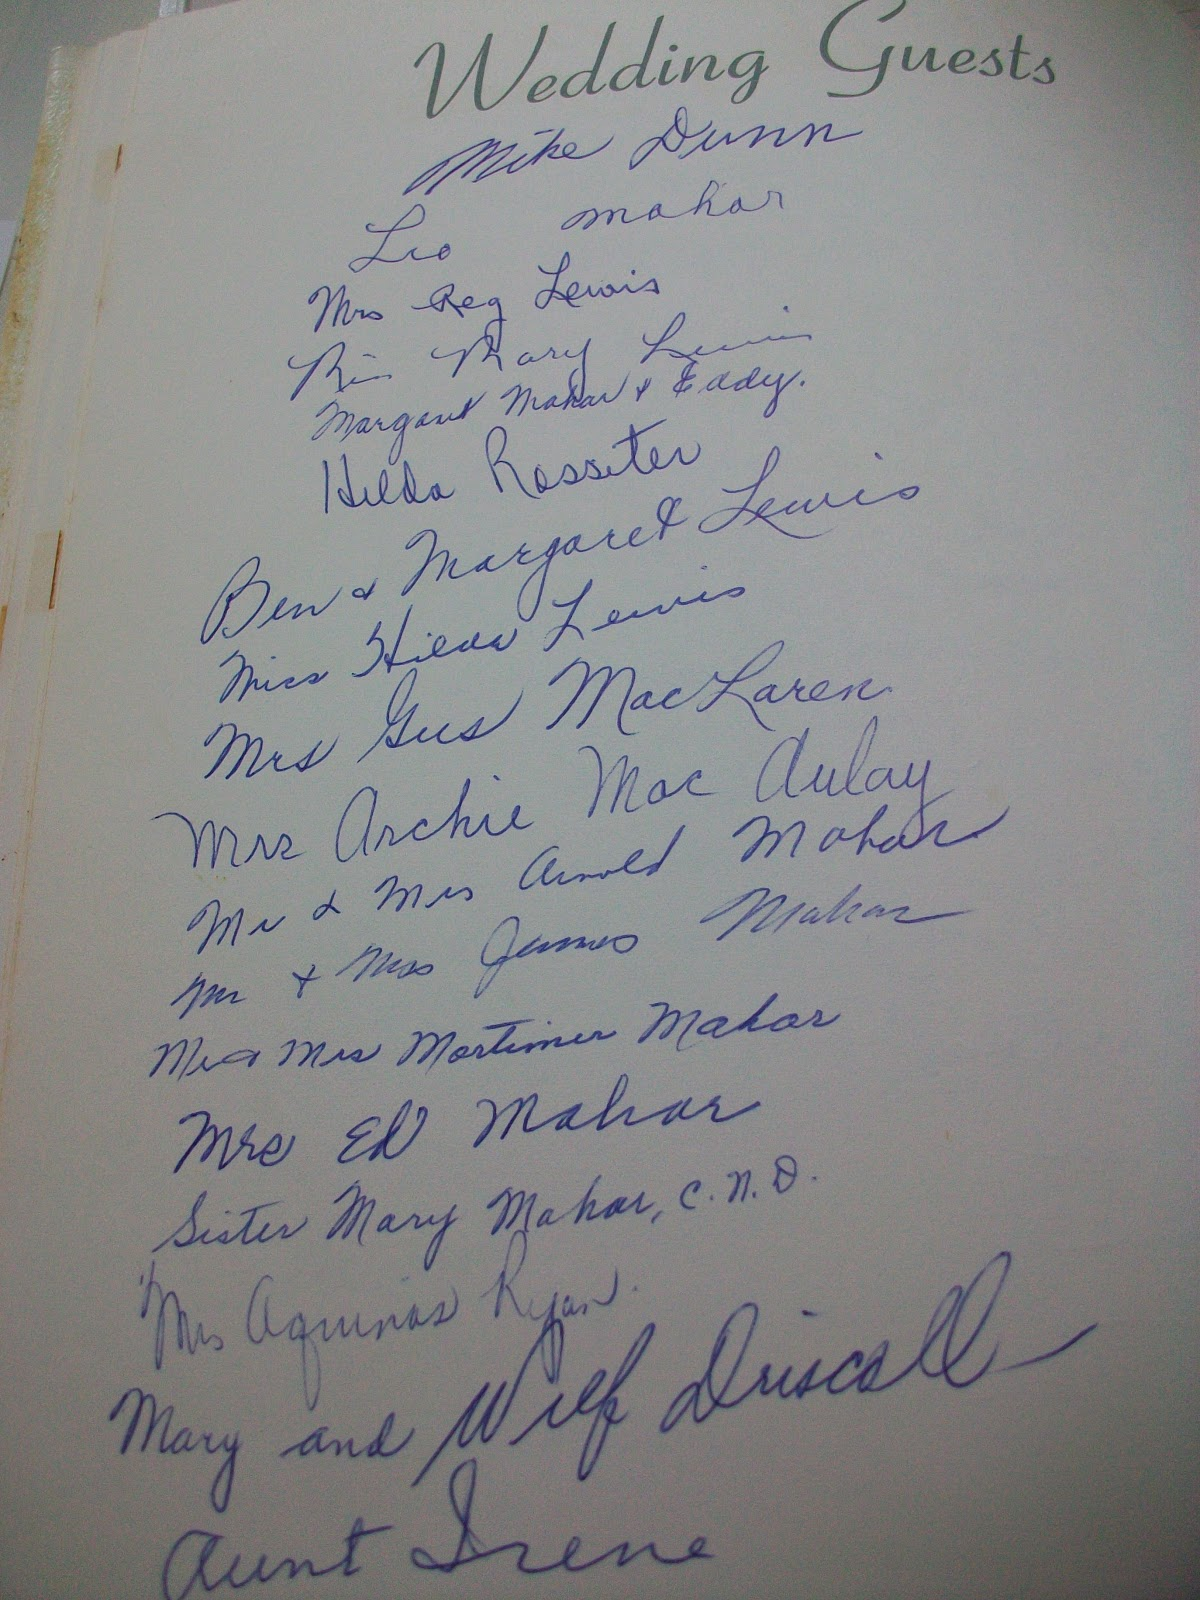 I Also Came Across The Speech That Dad Made At Their Wedding Reception Which Mom Says Jimmie MacAulay Helped Him Write It Was Touching To Read